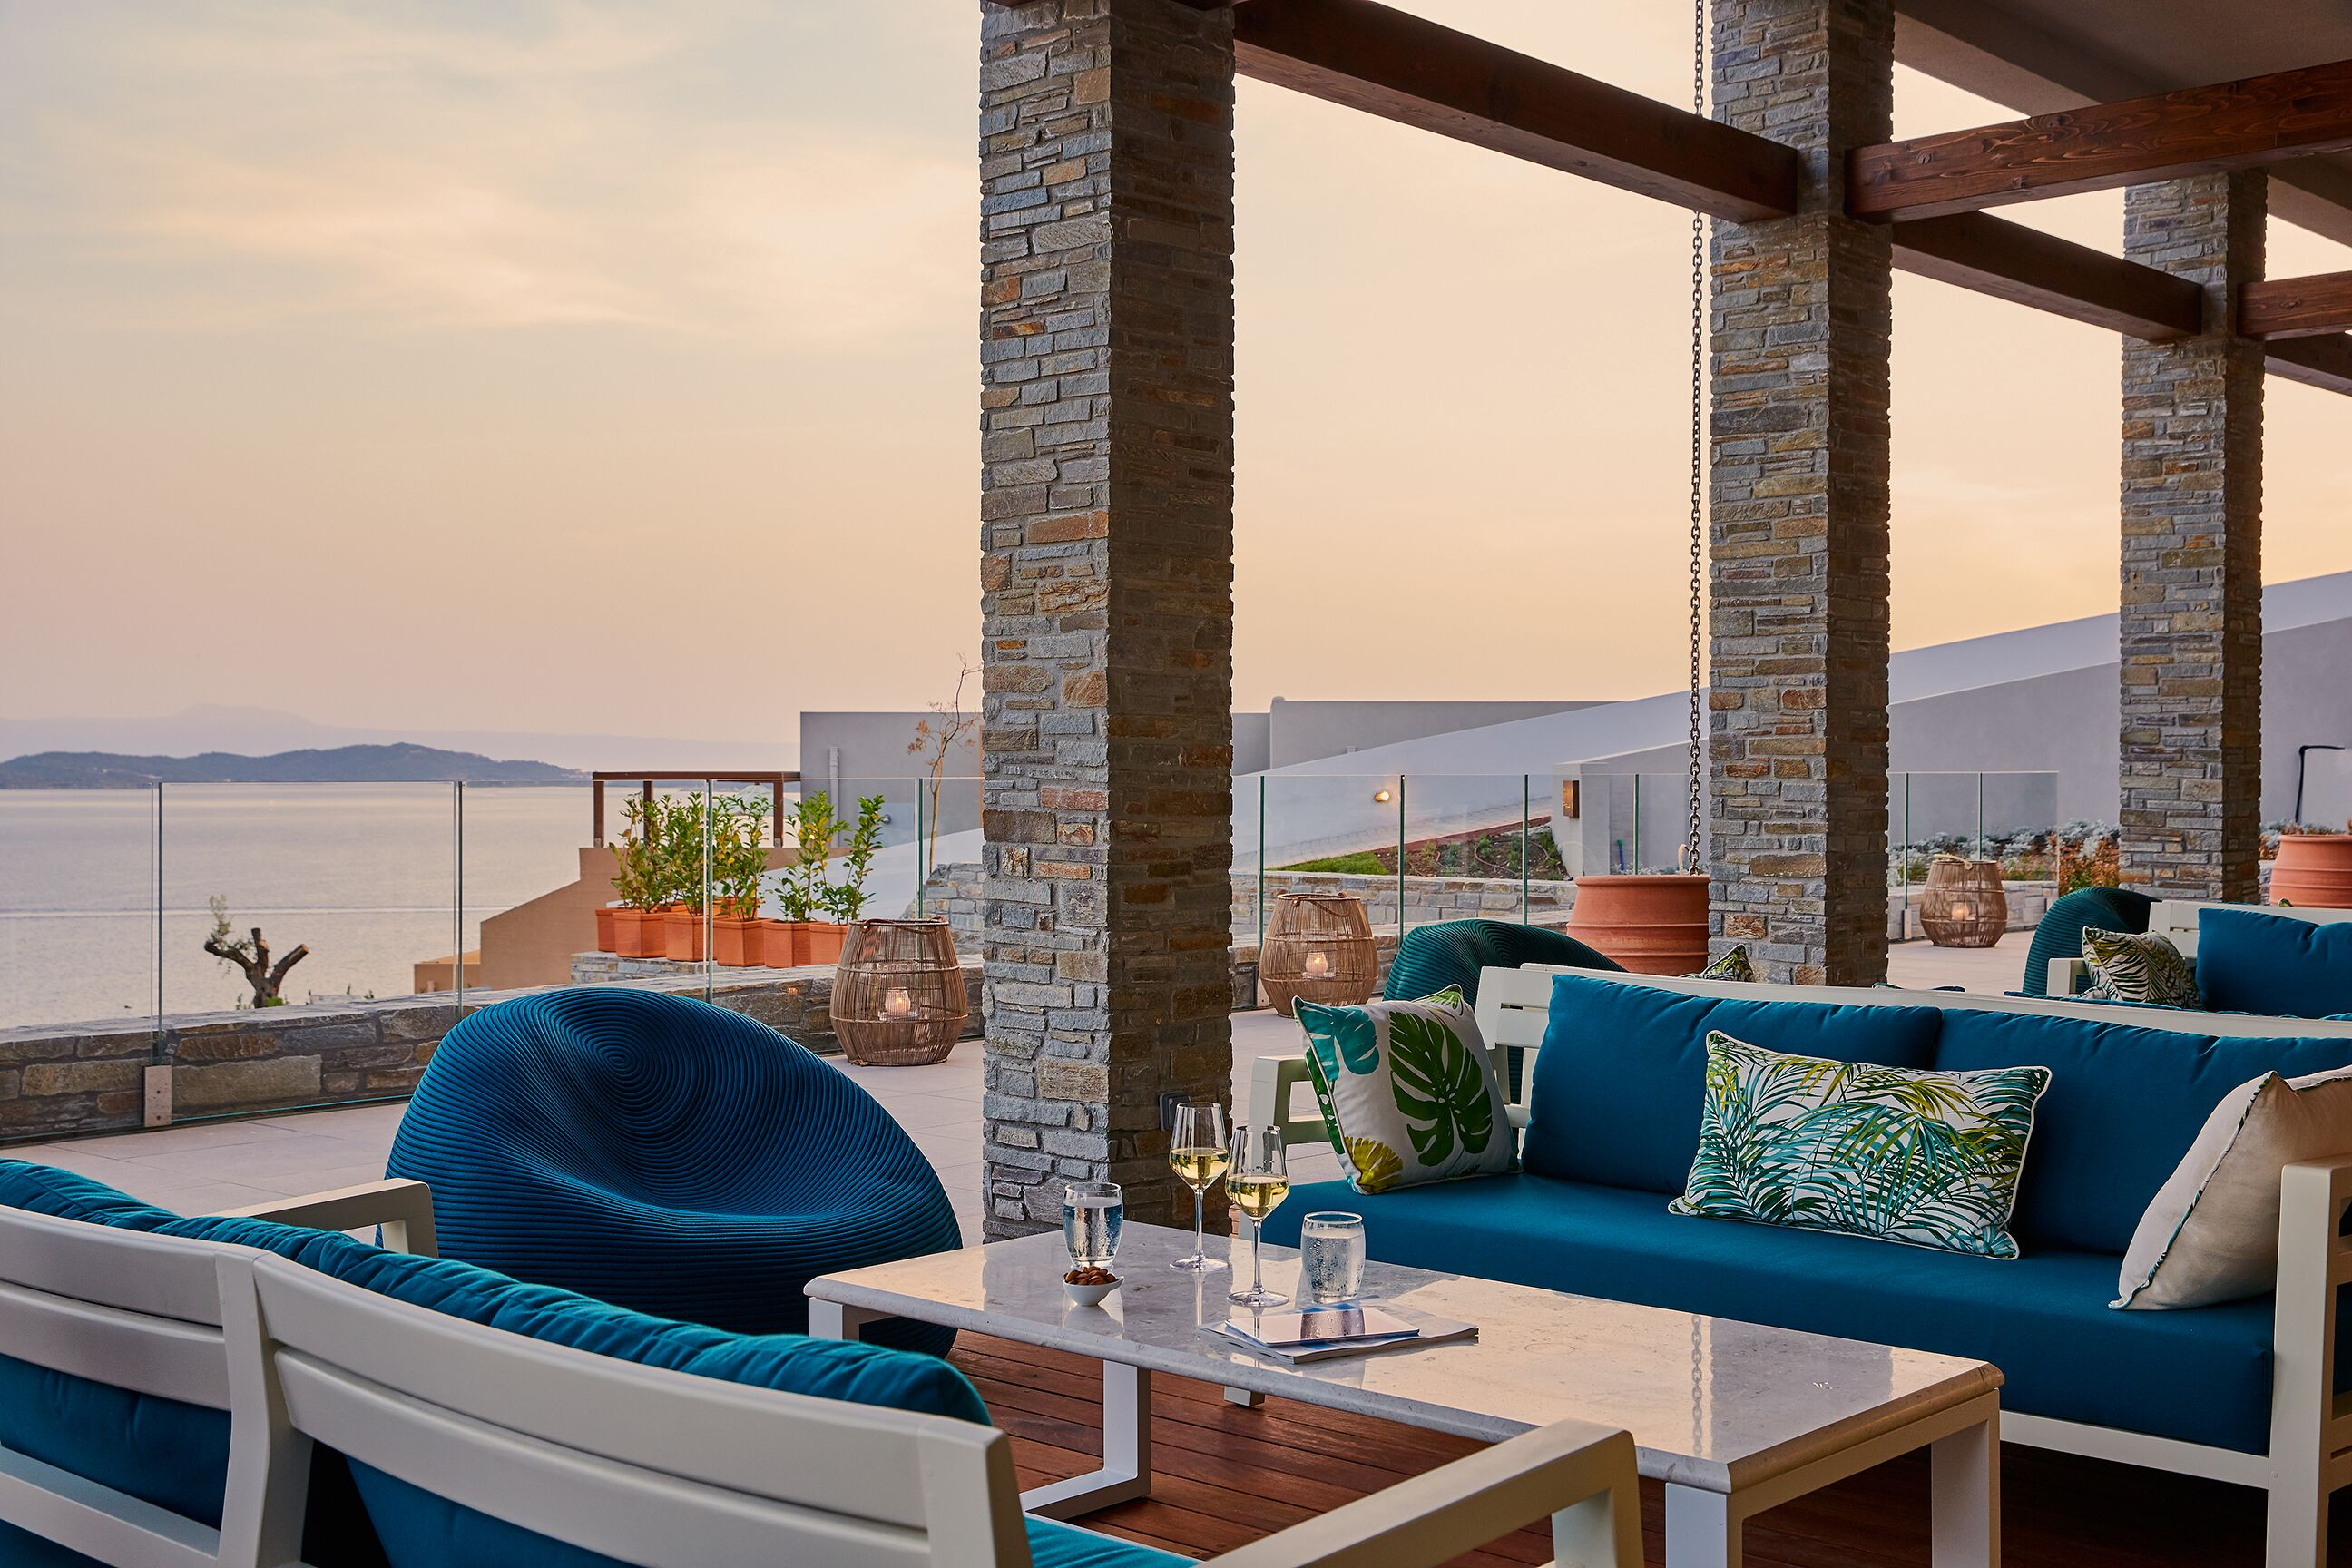 Small luxury hotels of the world summer getaways luxe for Small luxury hotels phoenix